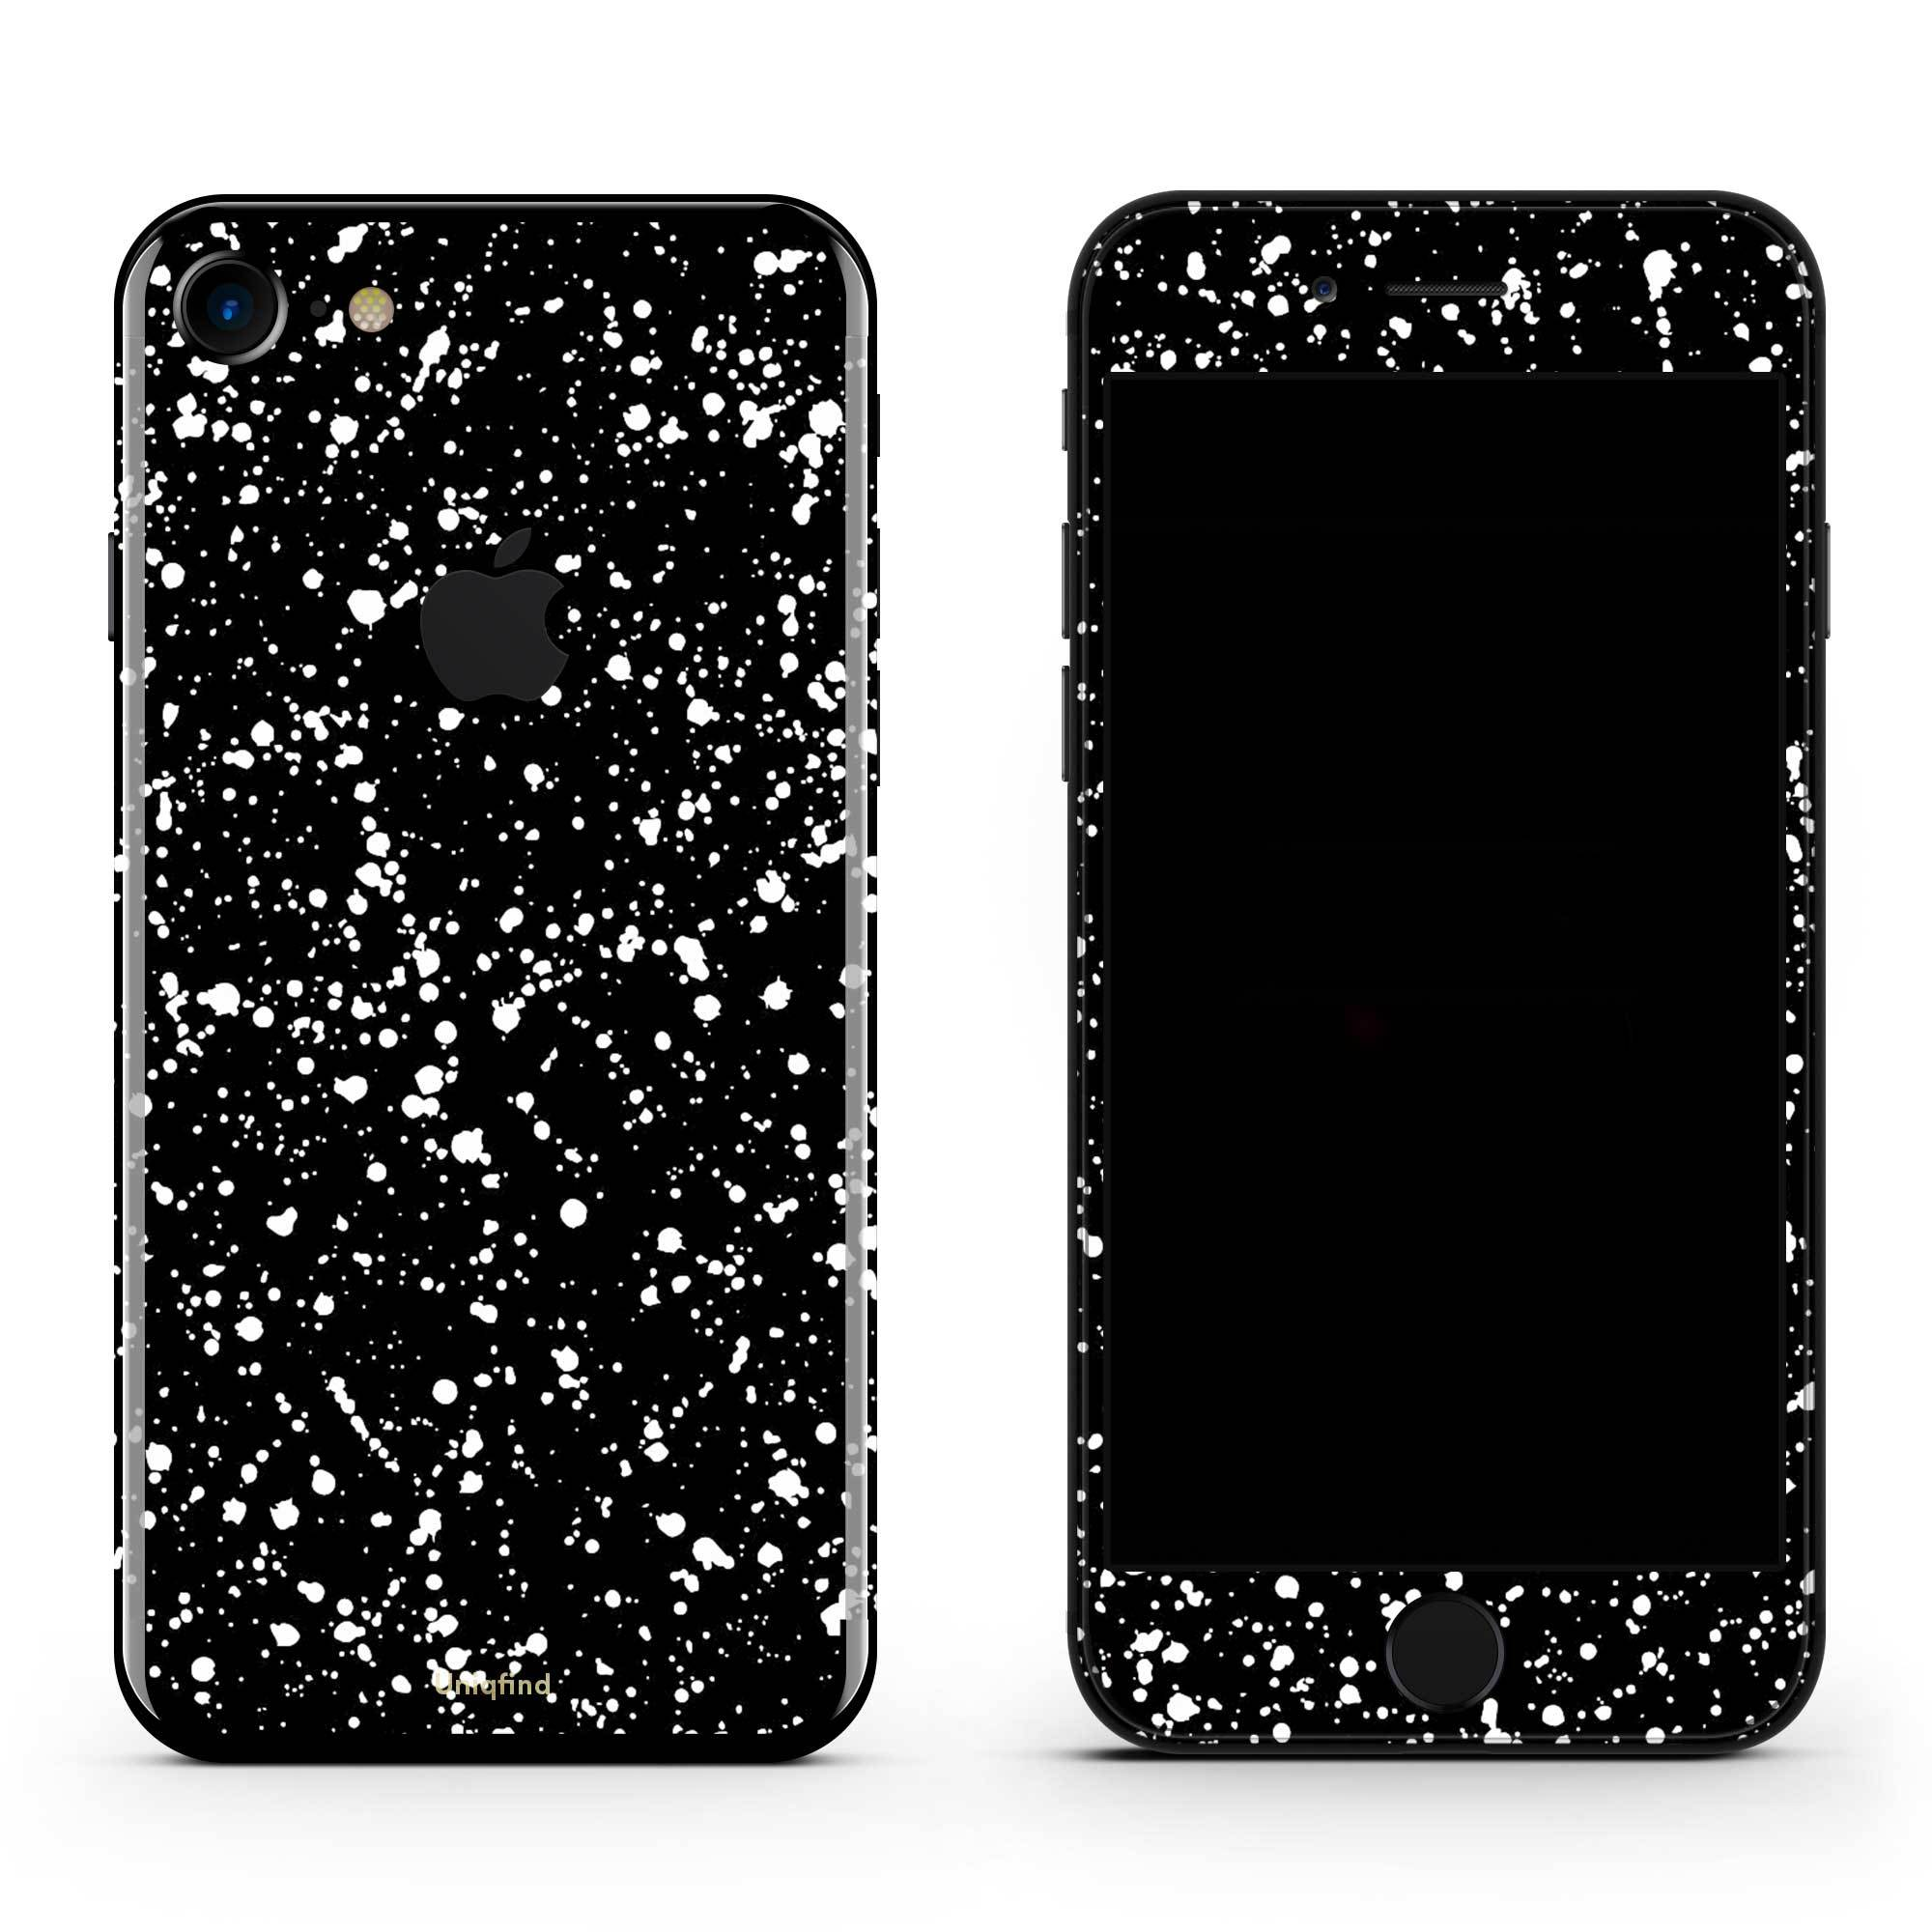 Black Speckle iPhone 7 Skin + Case